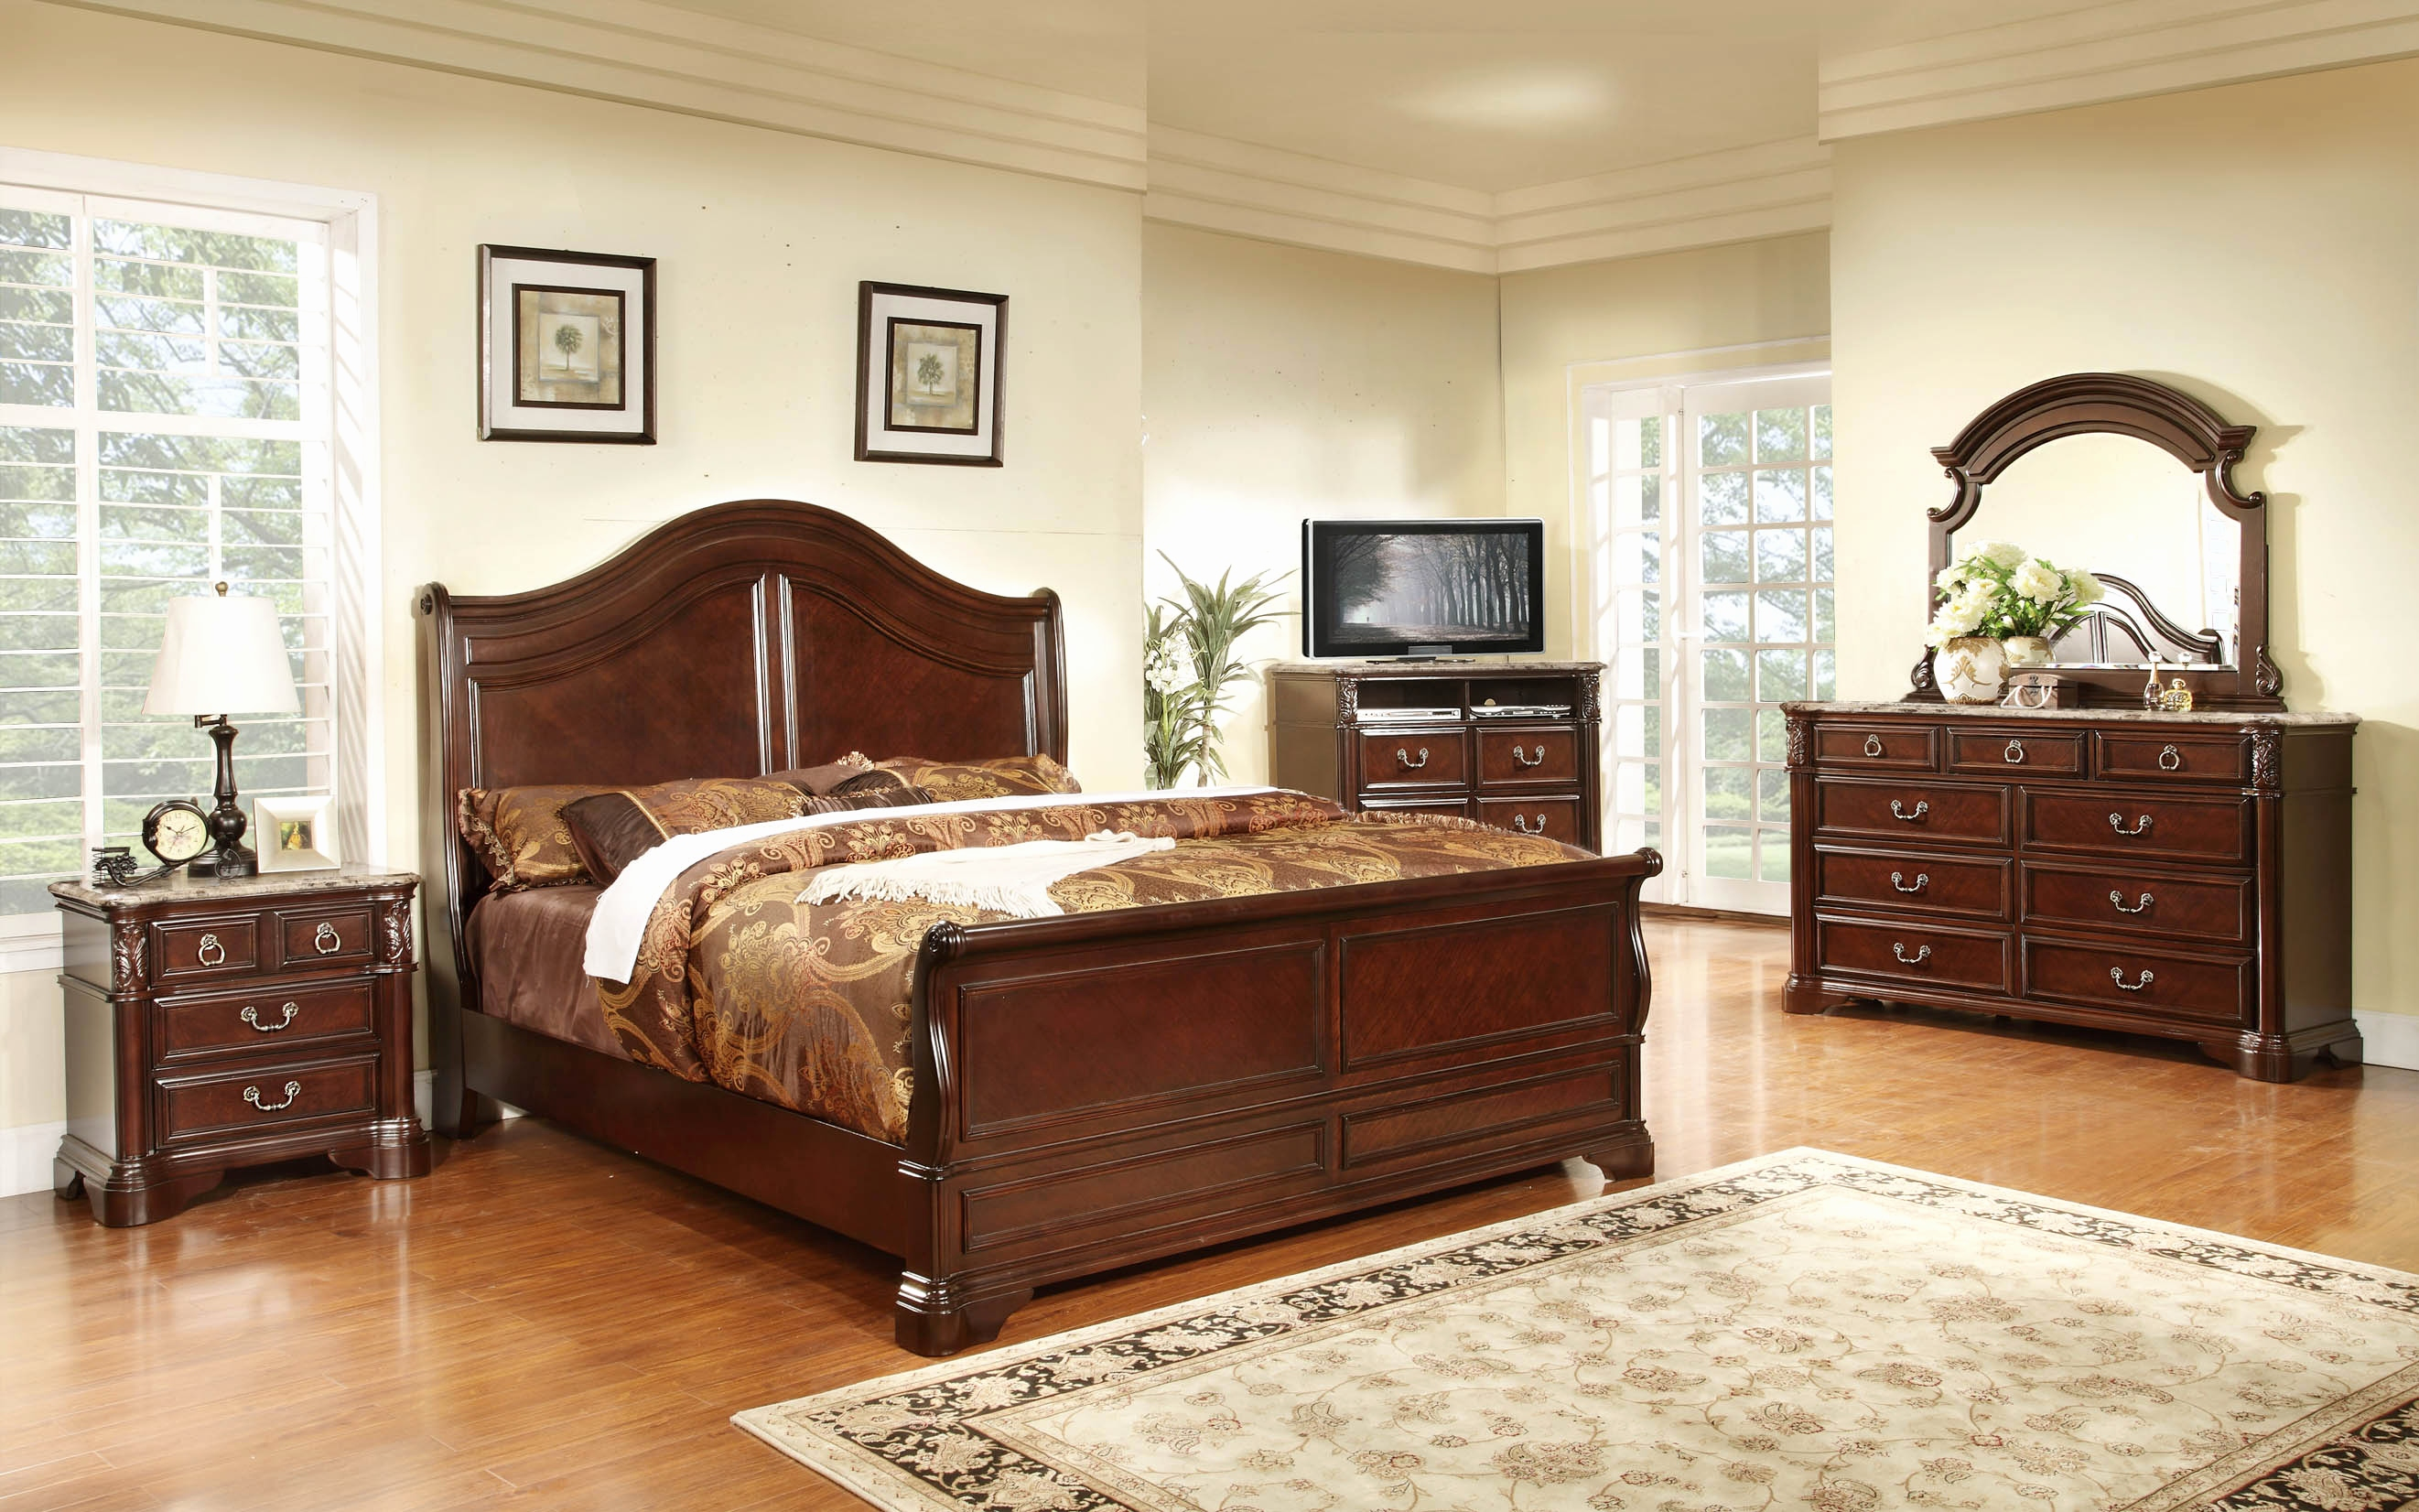 luxury bedroom furniture for kids photo - 6